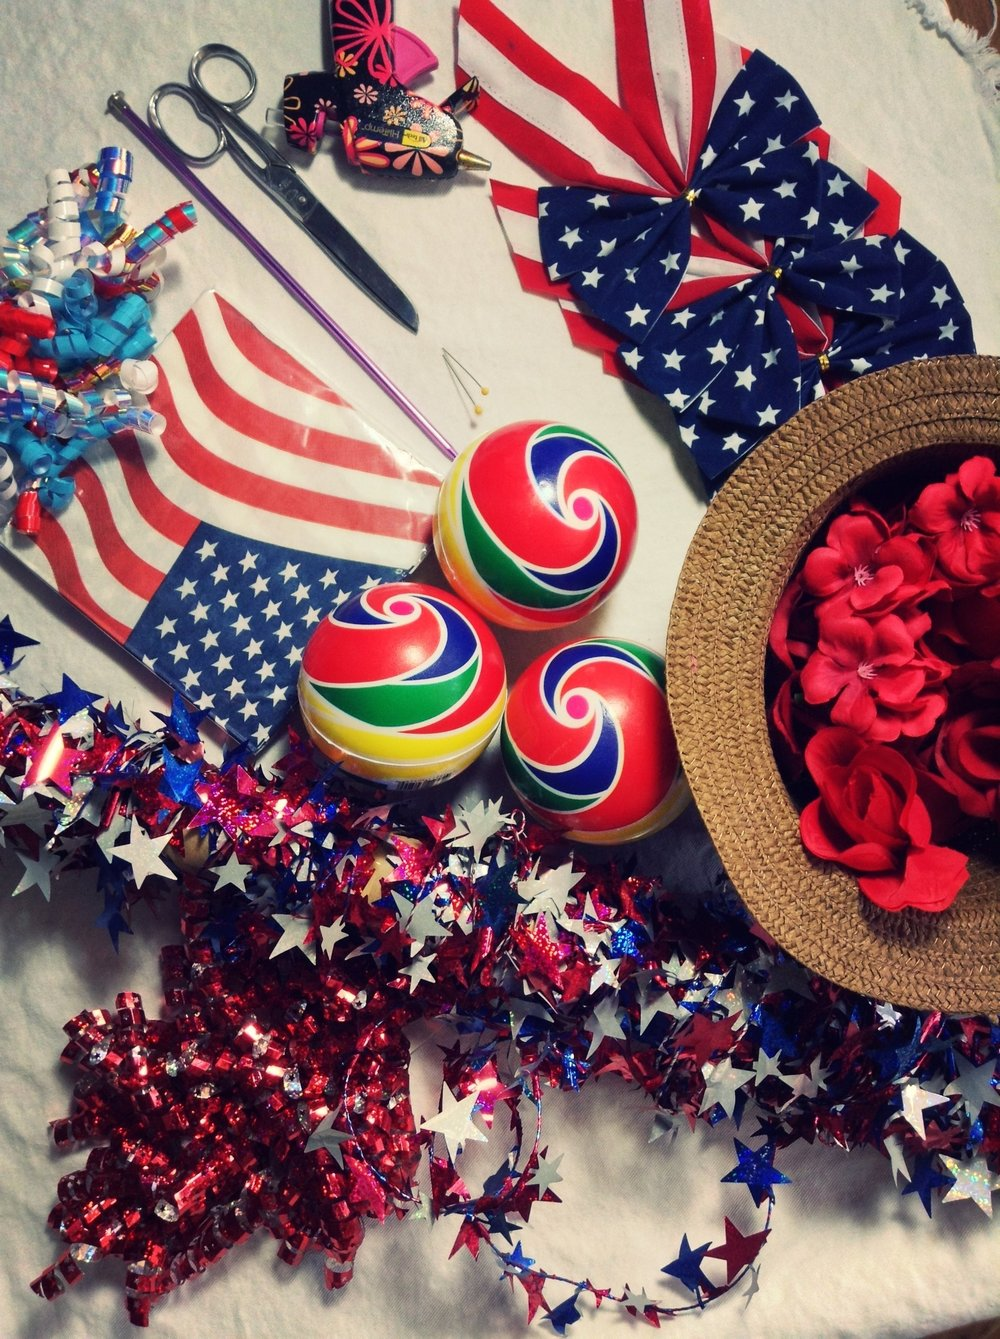 Supplies - -Round foam/styrofoam balls- Toy athetic foam balls from Dollar Tree-Flag themes paper napkins/tissue paper-Artificial flowers-Red, white & blue star wired garland-Flag themed bows-Yarn-Curled gift wrap ribbon/scissor curled ribbon-Hot glue gun/hot glue sticks-Scissors-Wire cutter/jewelry scissors-Strait pin/needle-Knitting needle/chop stick/long narrow stick with pointy end-Scotch tape-Twist ties (optional)